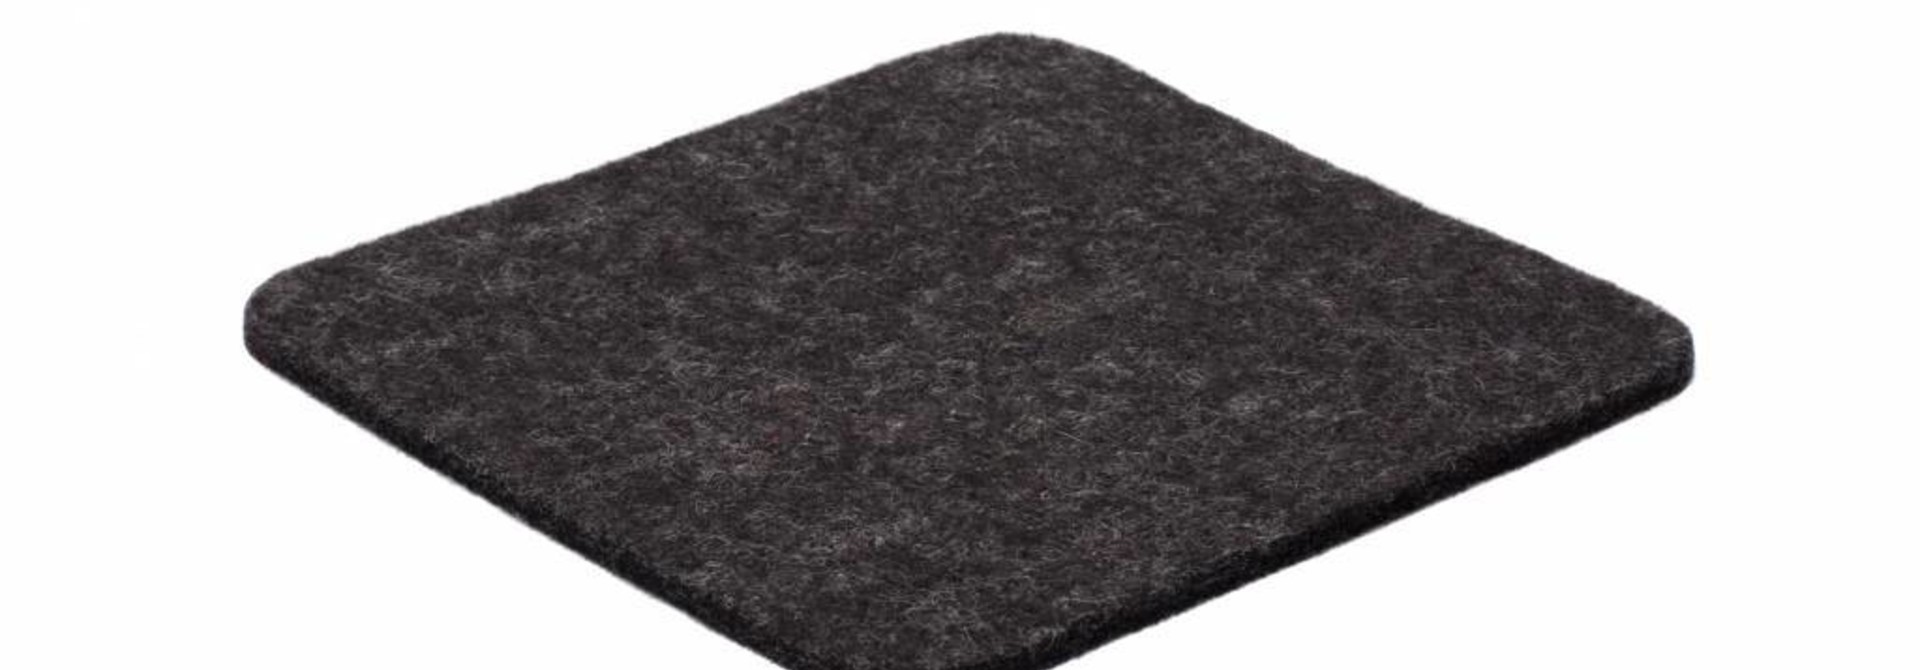 Anthracite felt coaster